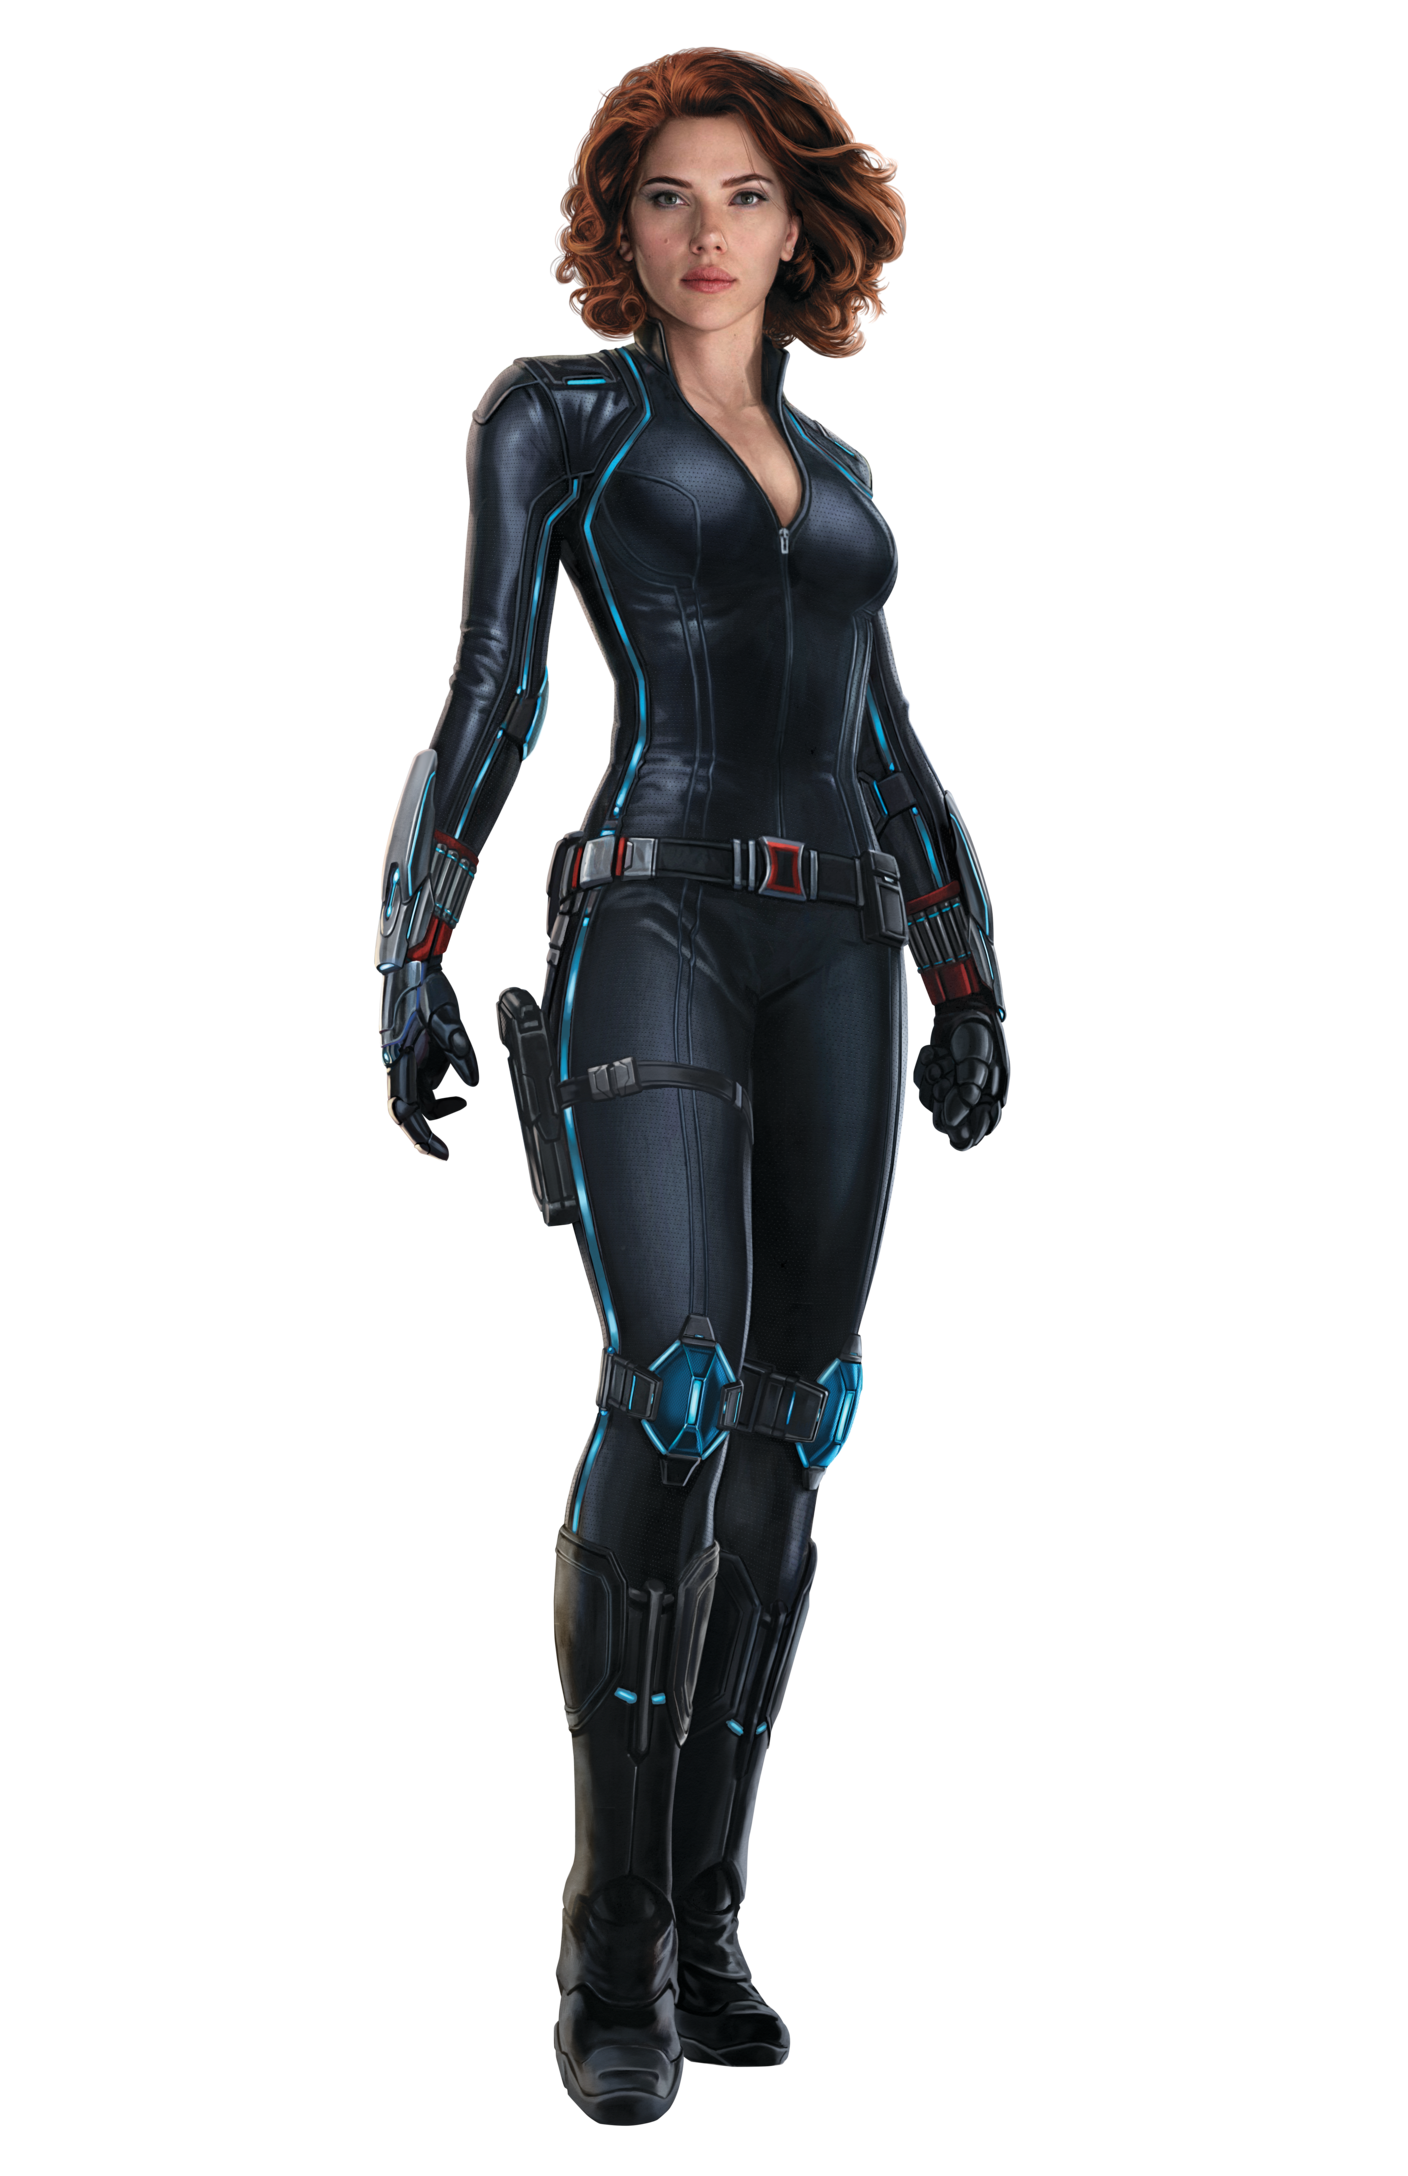 Black Widow Png Image PNG Ima